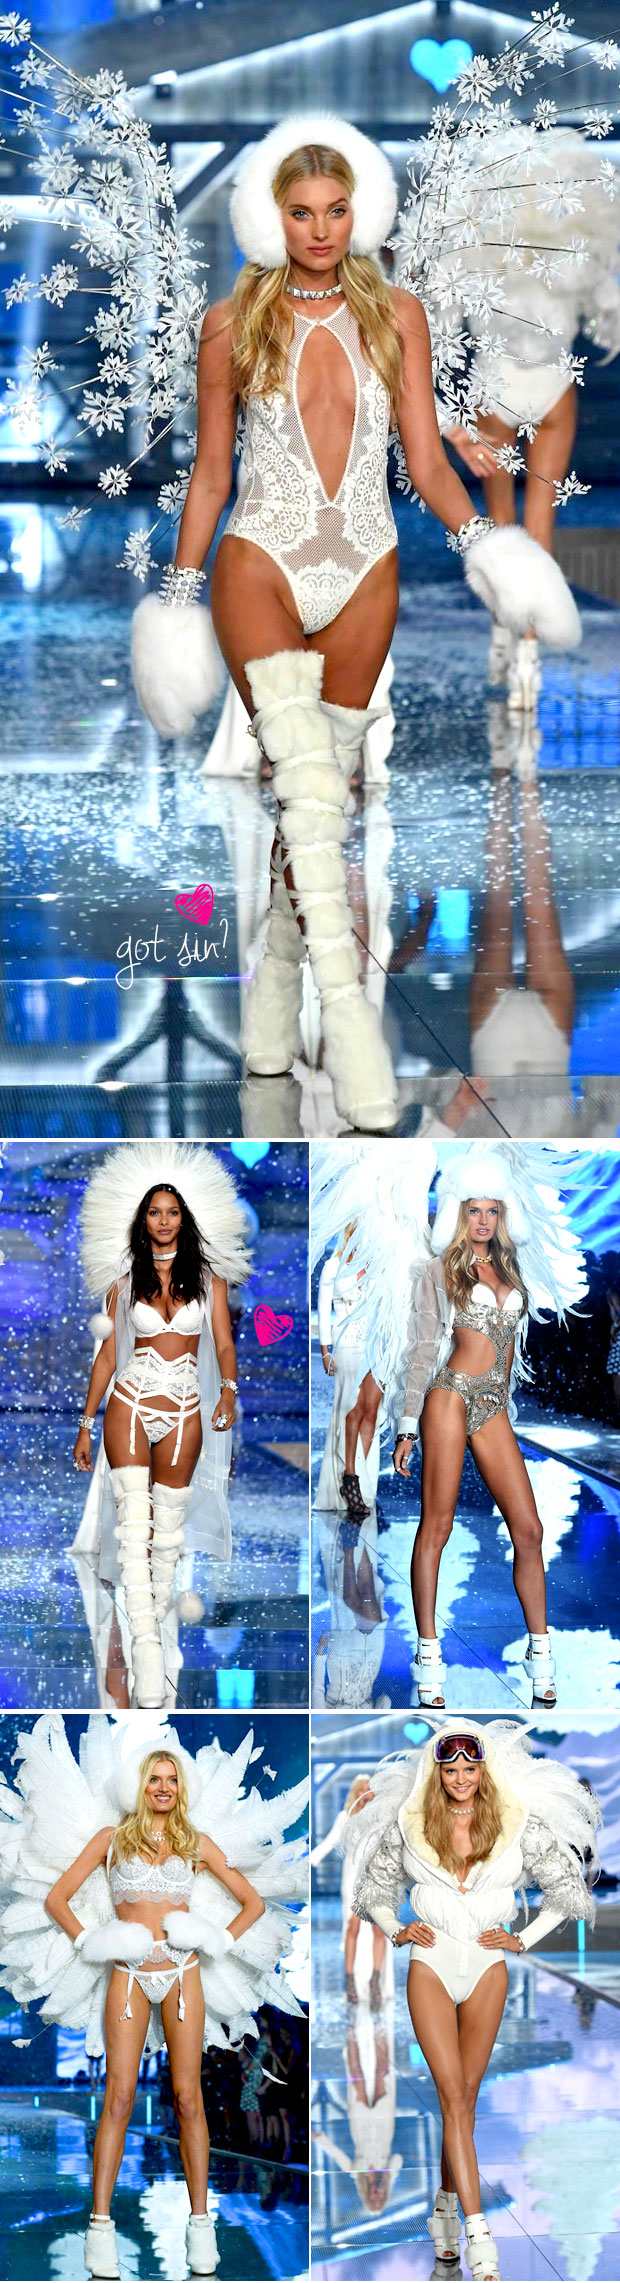 victorias-secret-fashion-show-snow-queens-todas-as-fotos-blog-got-sin-elsa-frozen-